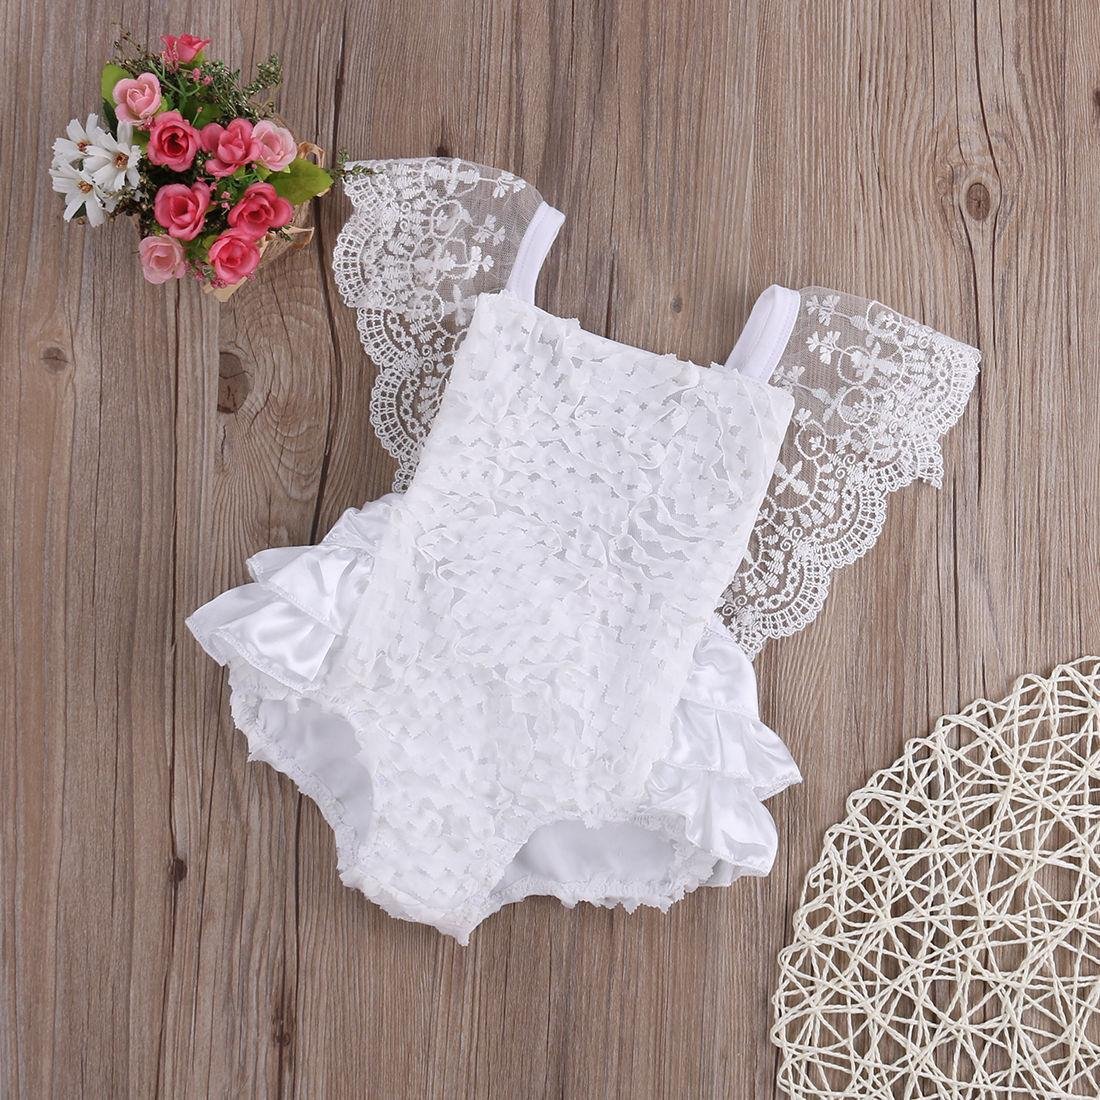 92ea249983ff9f 2019 Baby Girl Clothes Lace Floral Bodysuit Sunsuit Outfits Lovely White  Lace Baby Bodysuits 0 18 Months For Birthday Party Bodysuits From  Kangsanzuo888, ...